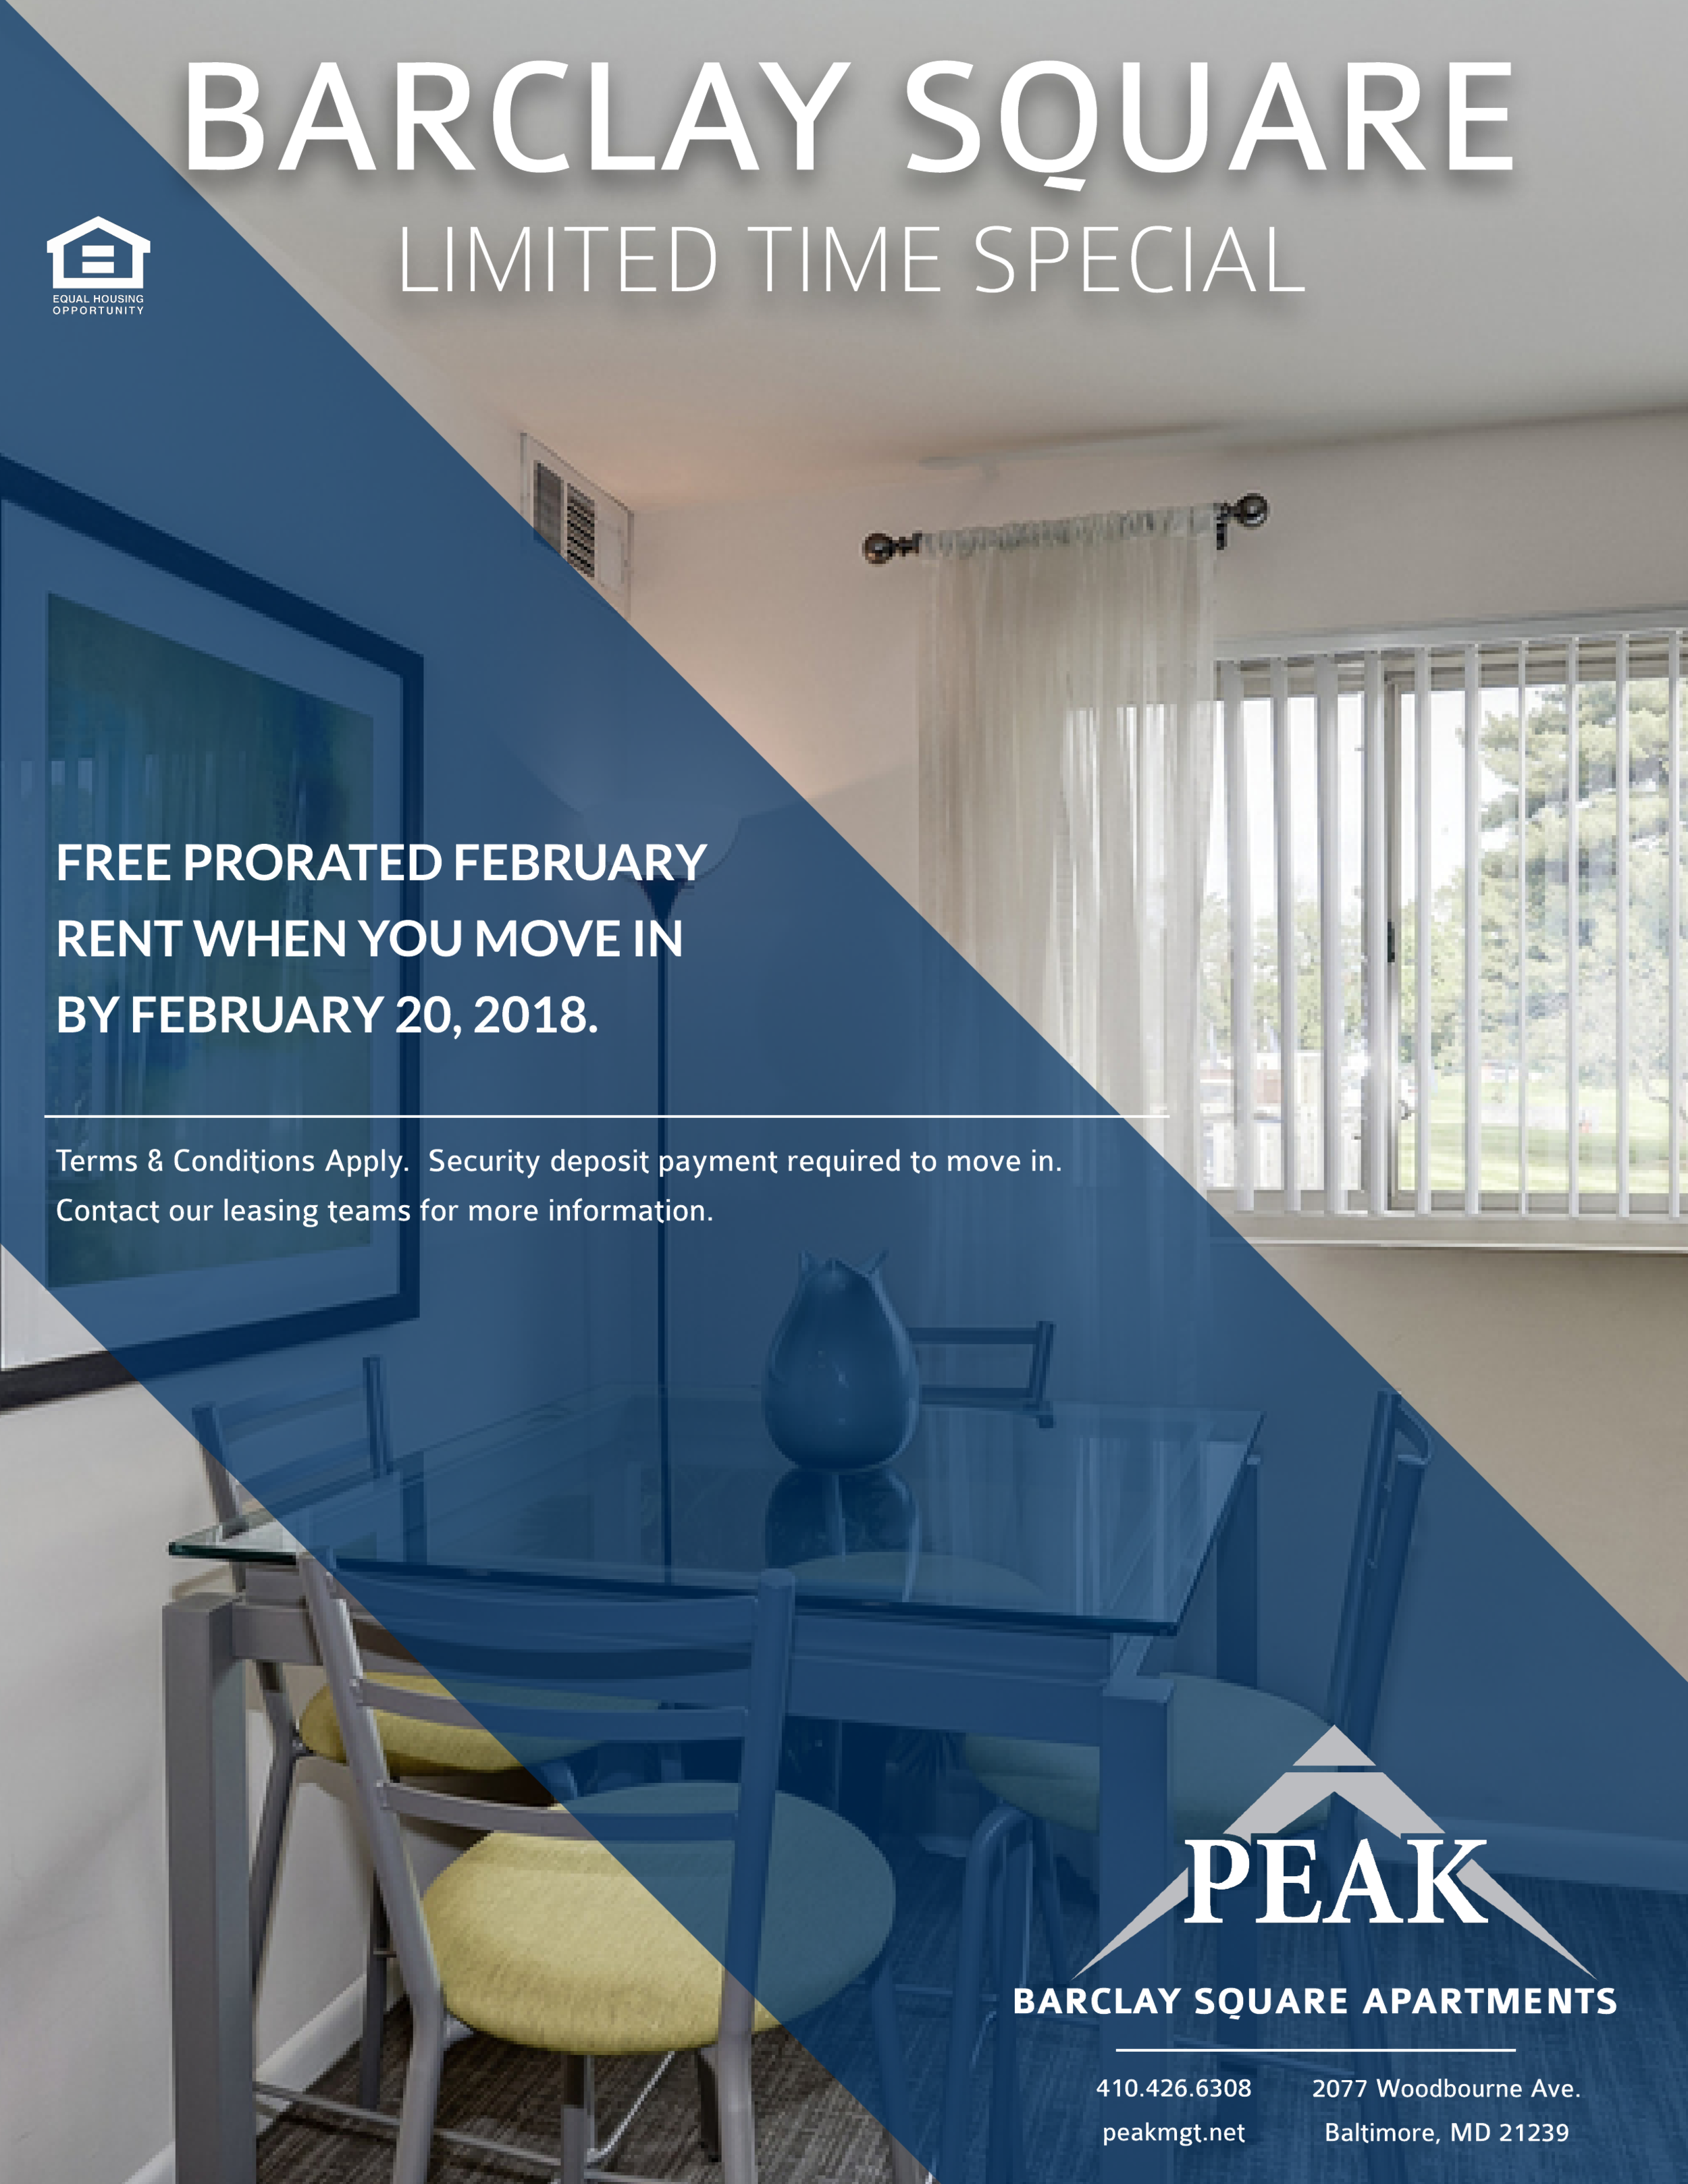 Barclay Square Apartments in Baltimore, MD February Rent Promotion